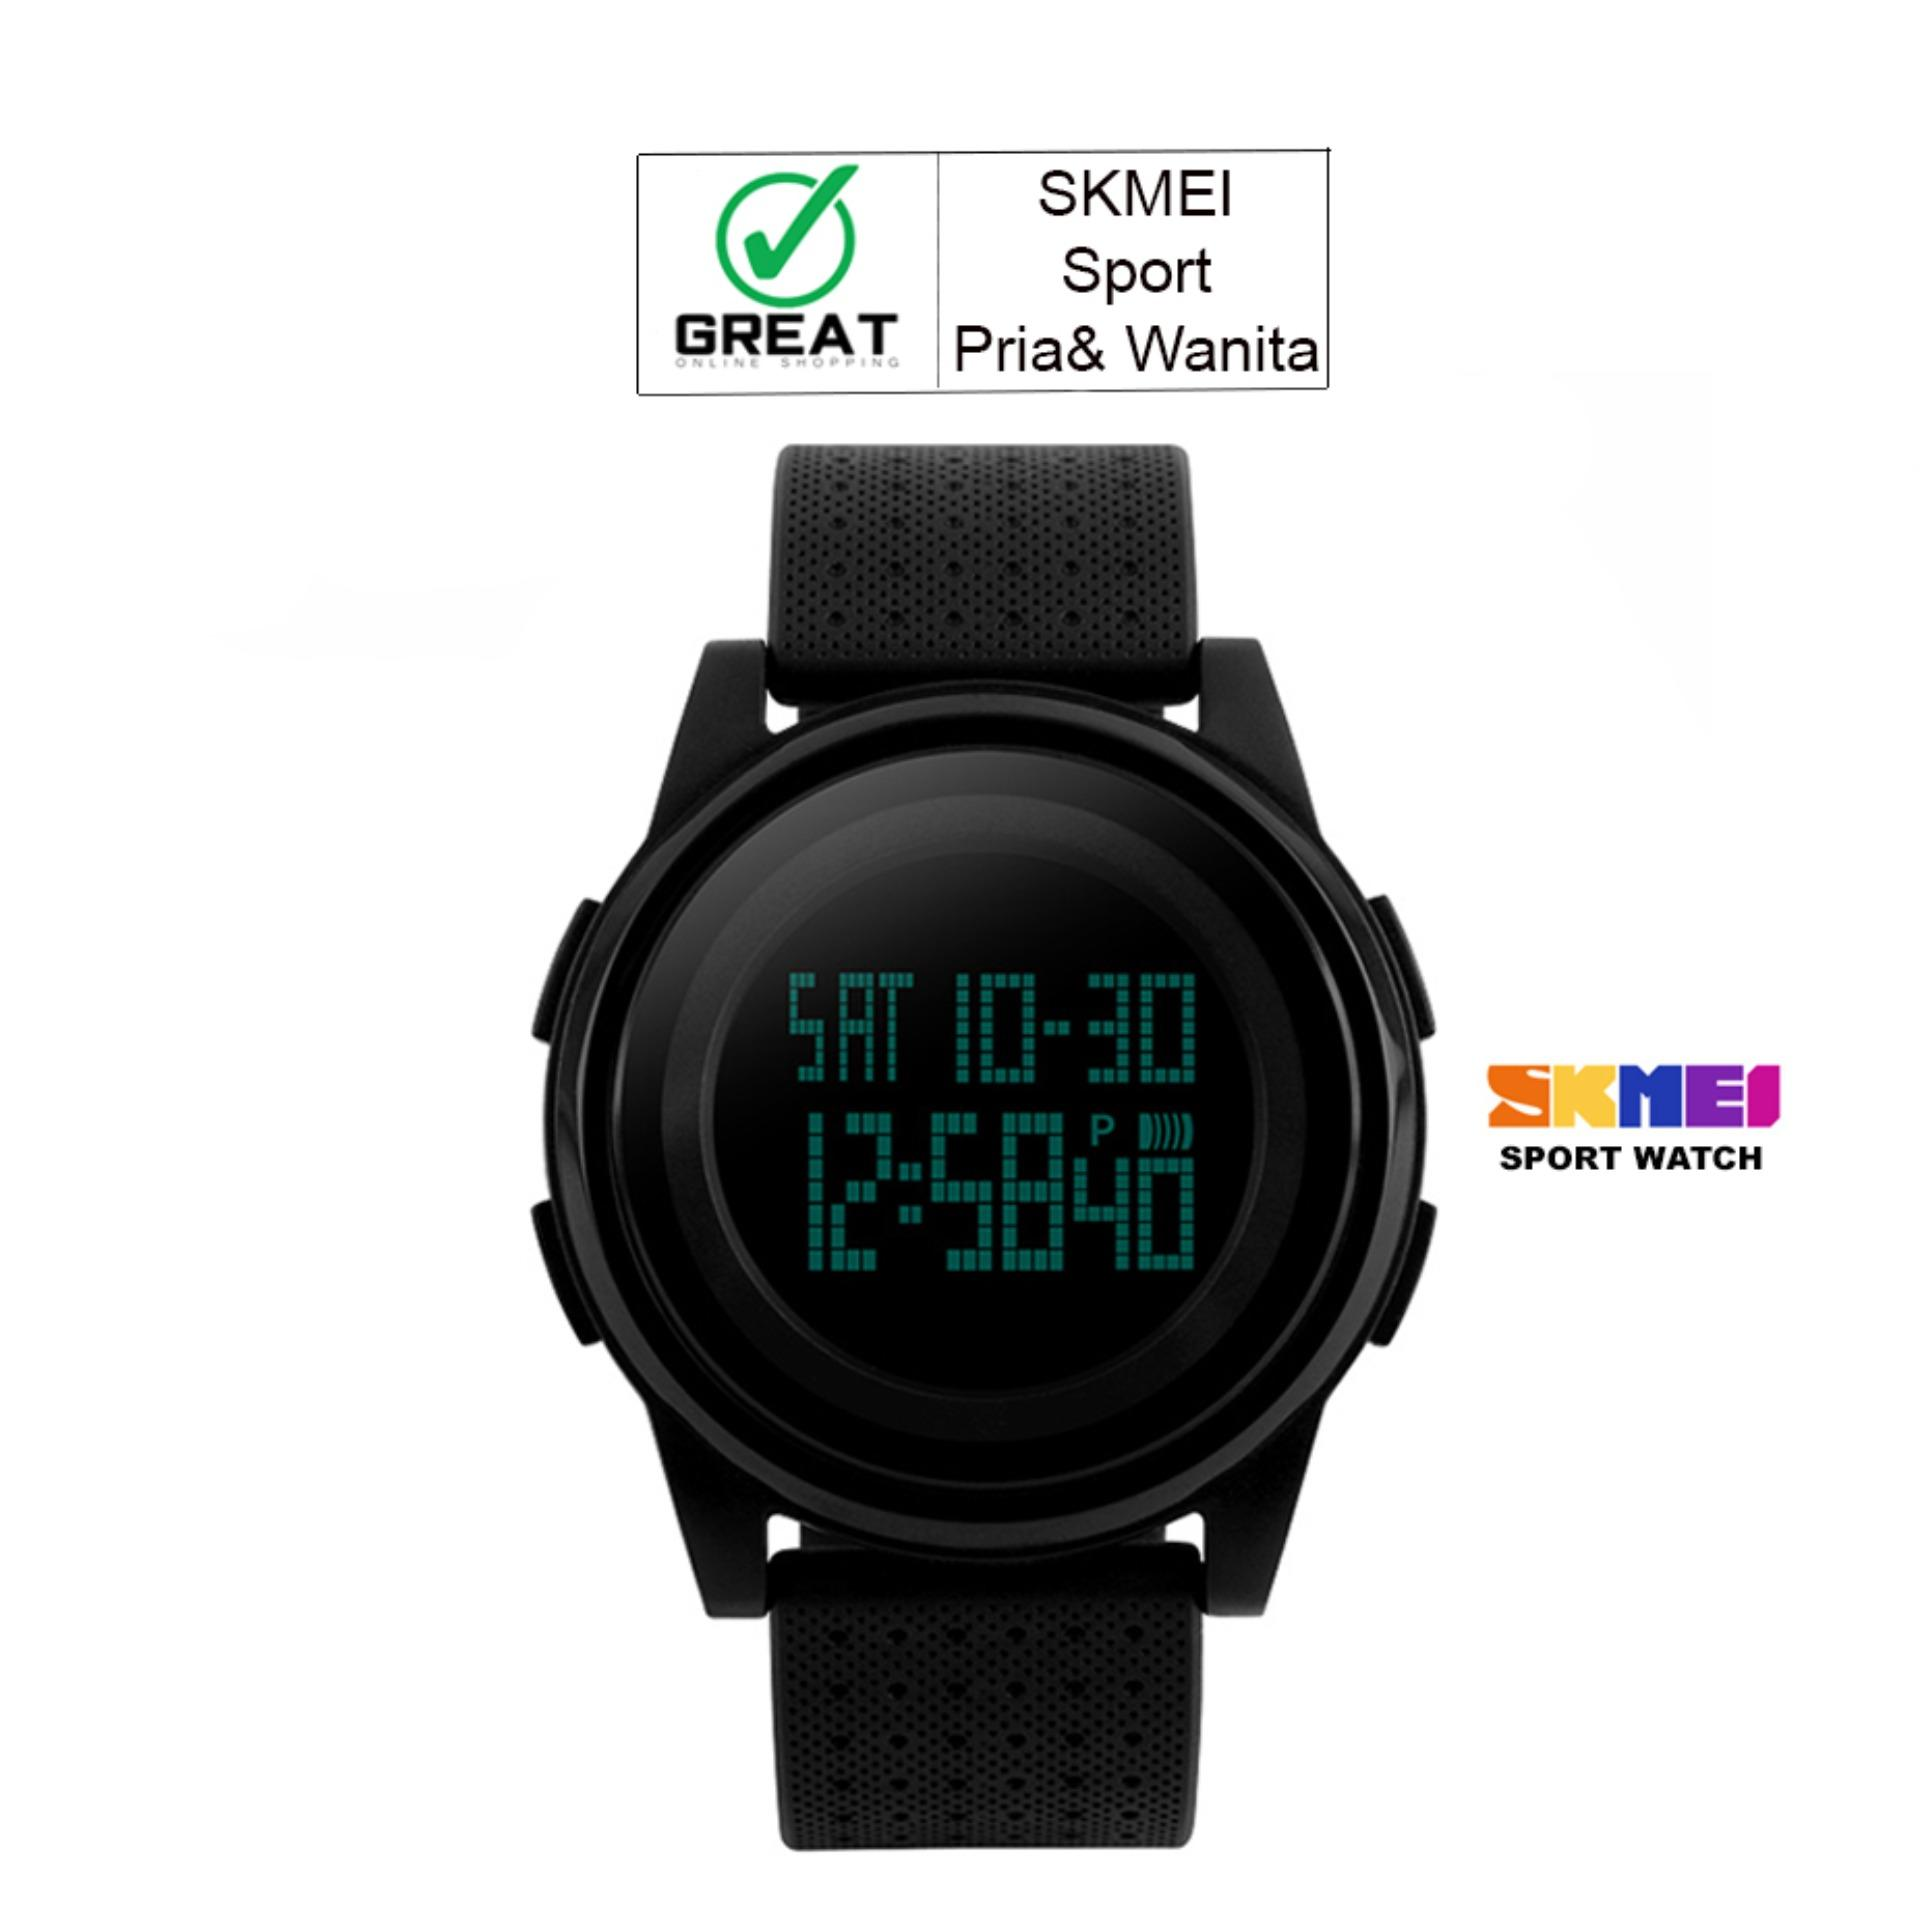 SKMEI Digital Sport Watch Water Resistant 50m DG1206 Jam Tangan Sport Day Date Night Light Stopwatch - Hitam